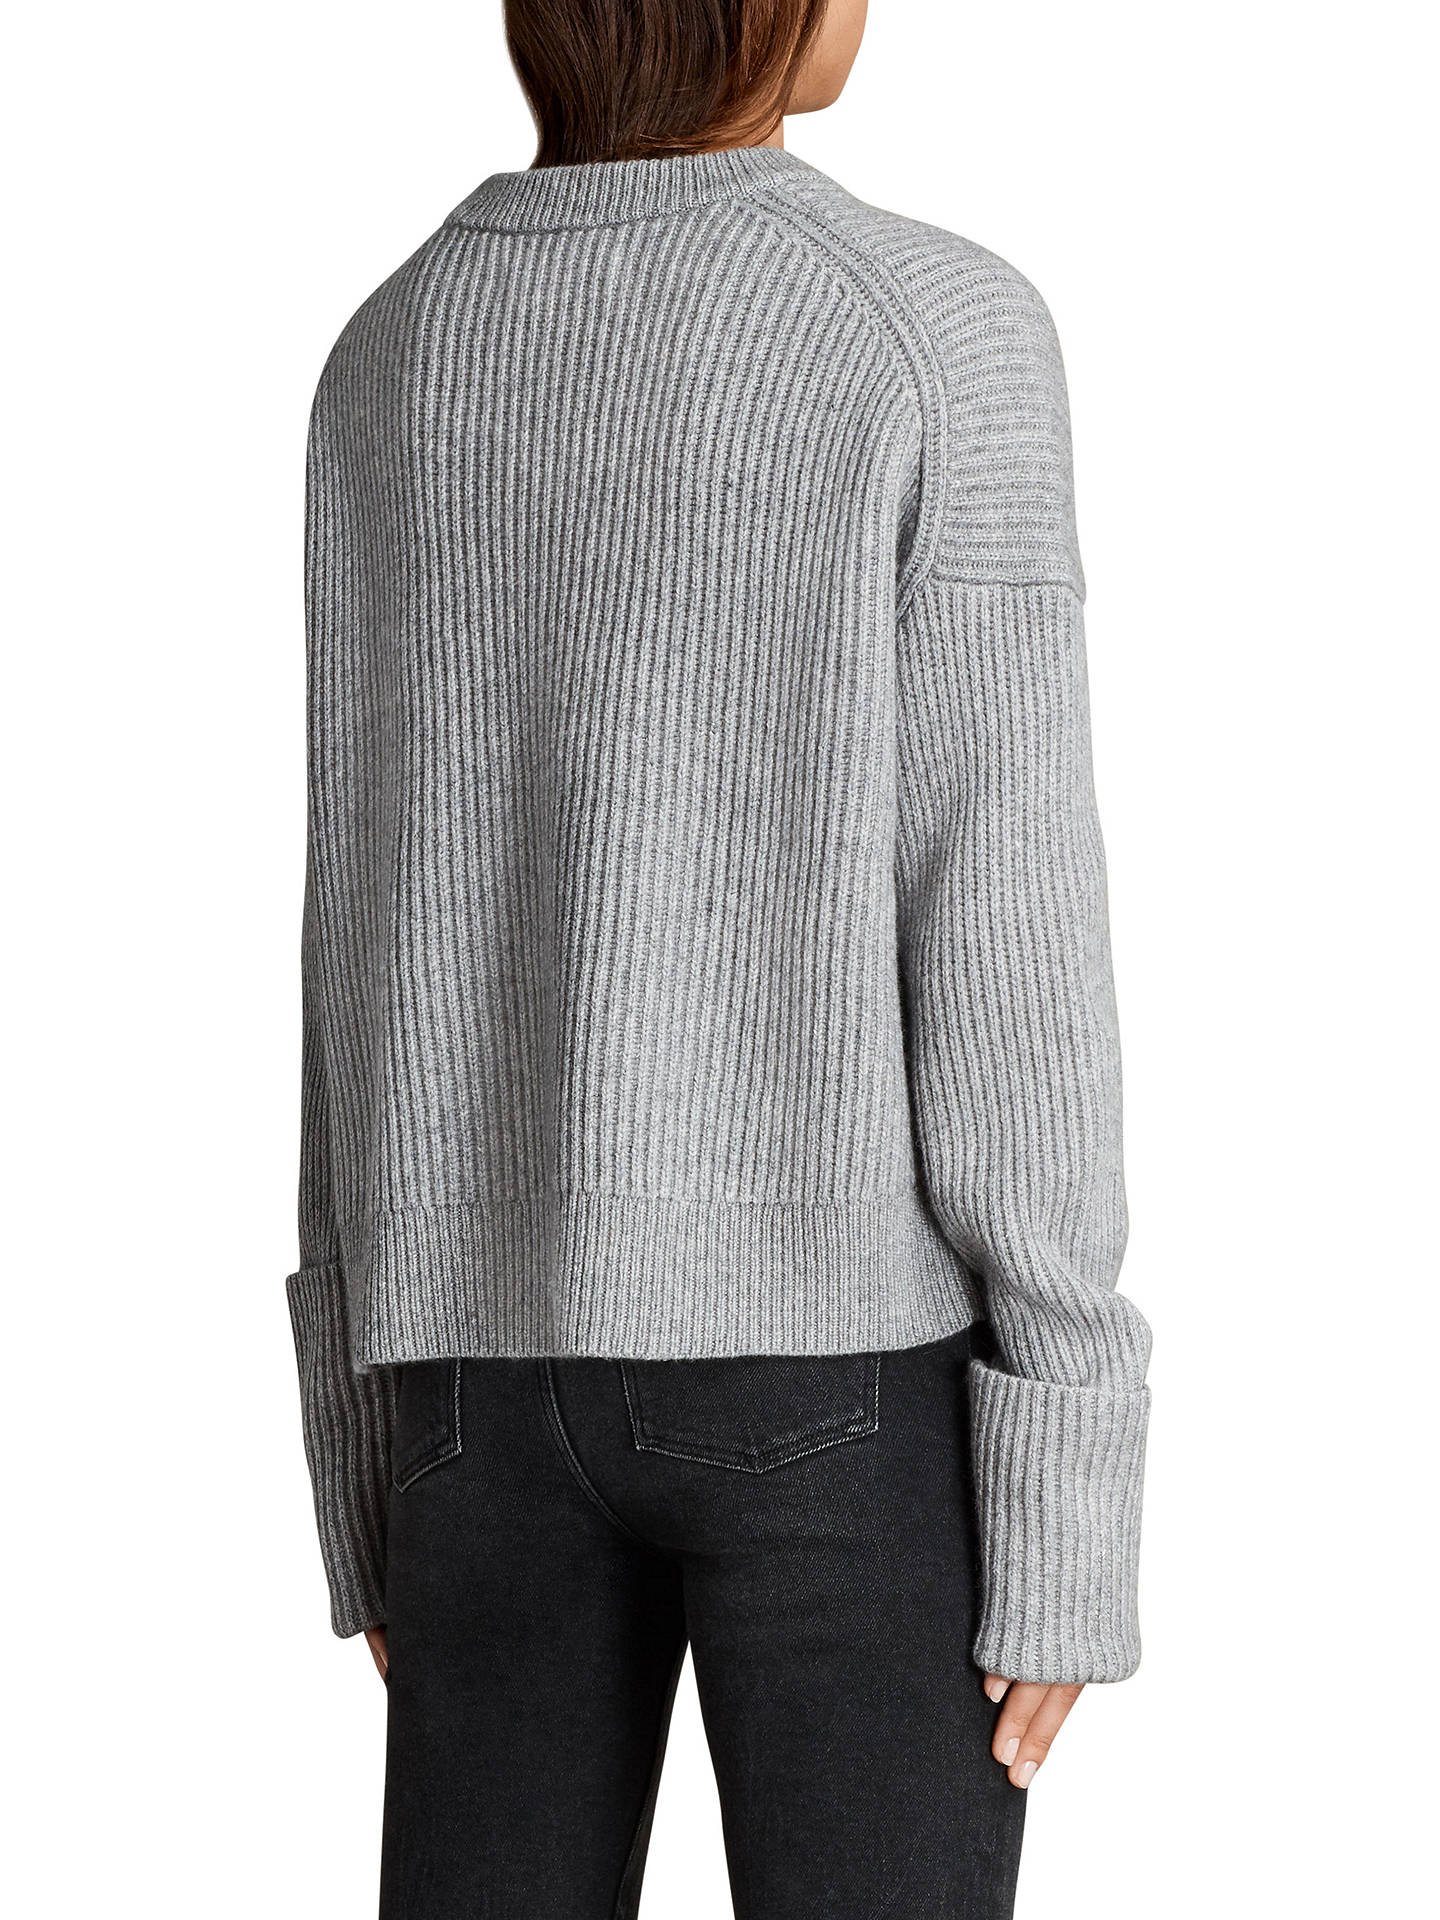 AllSaints Pierce Jumper at John Lewis & Partners